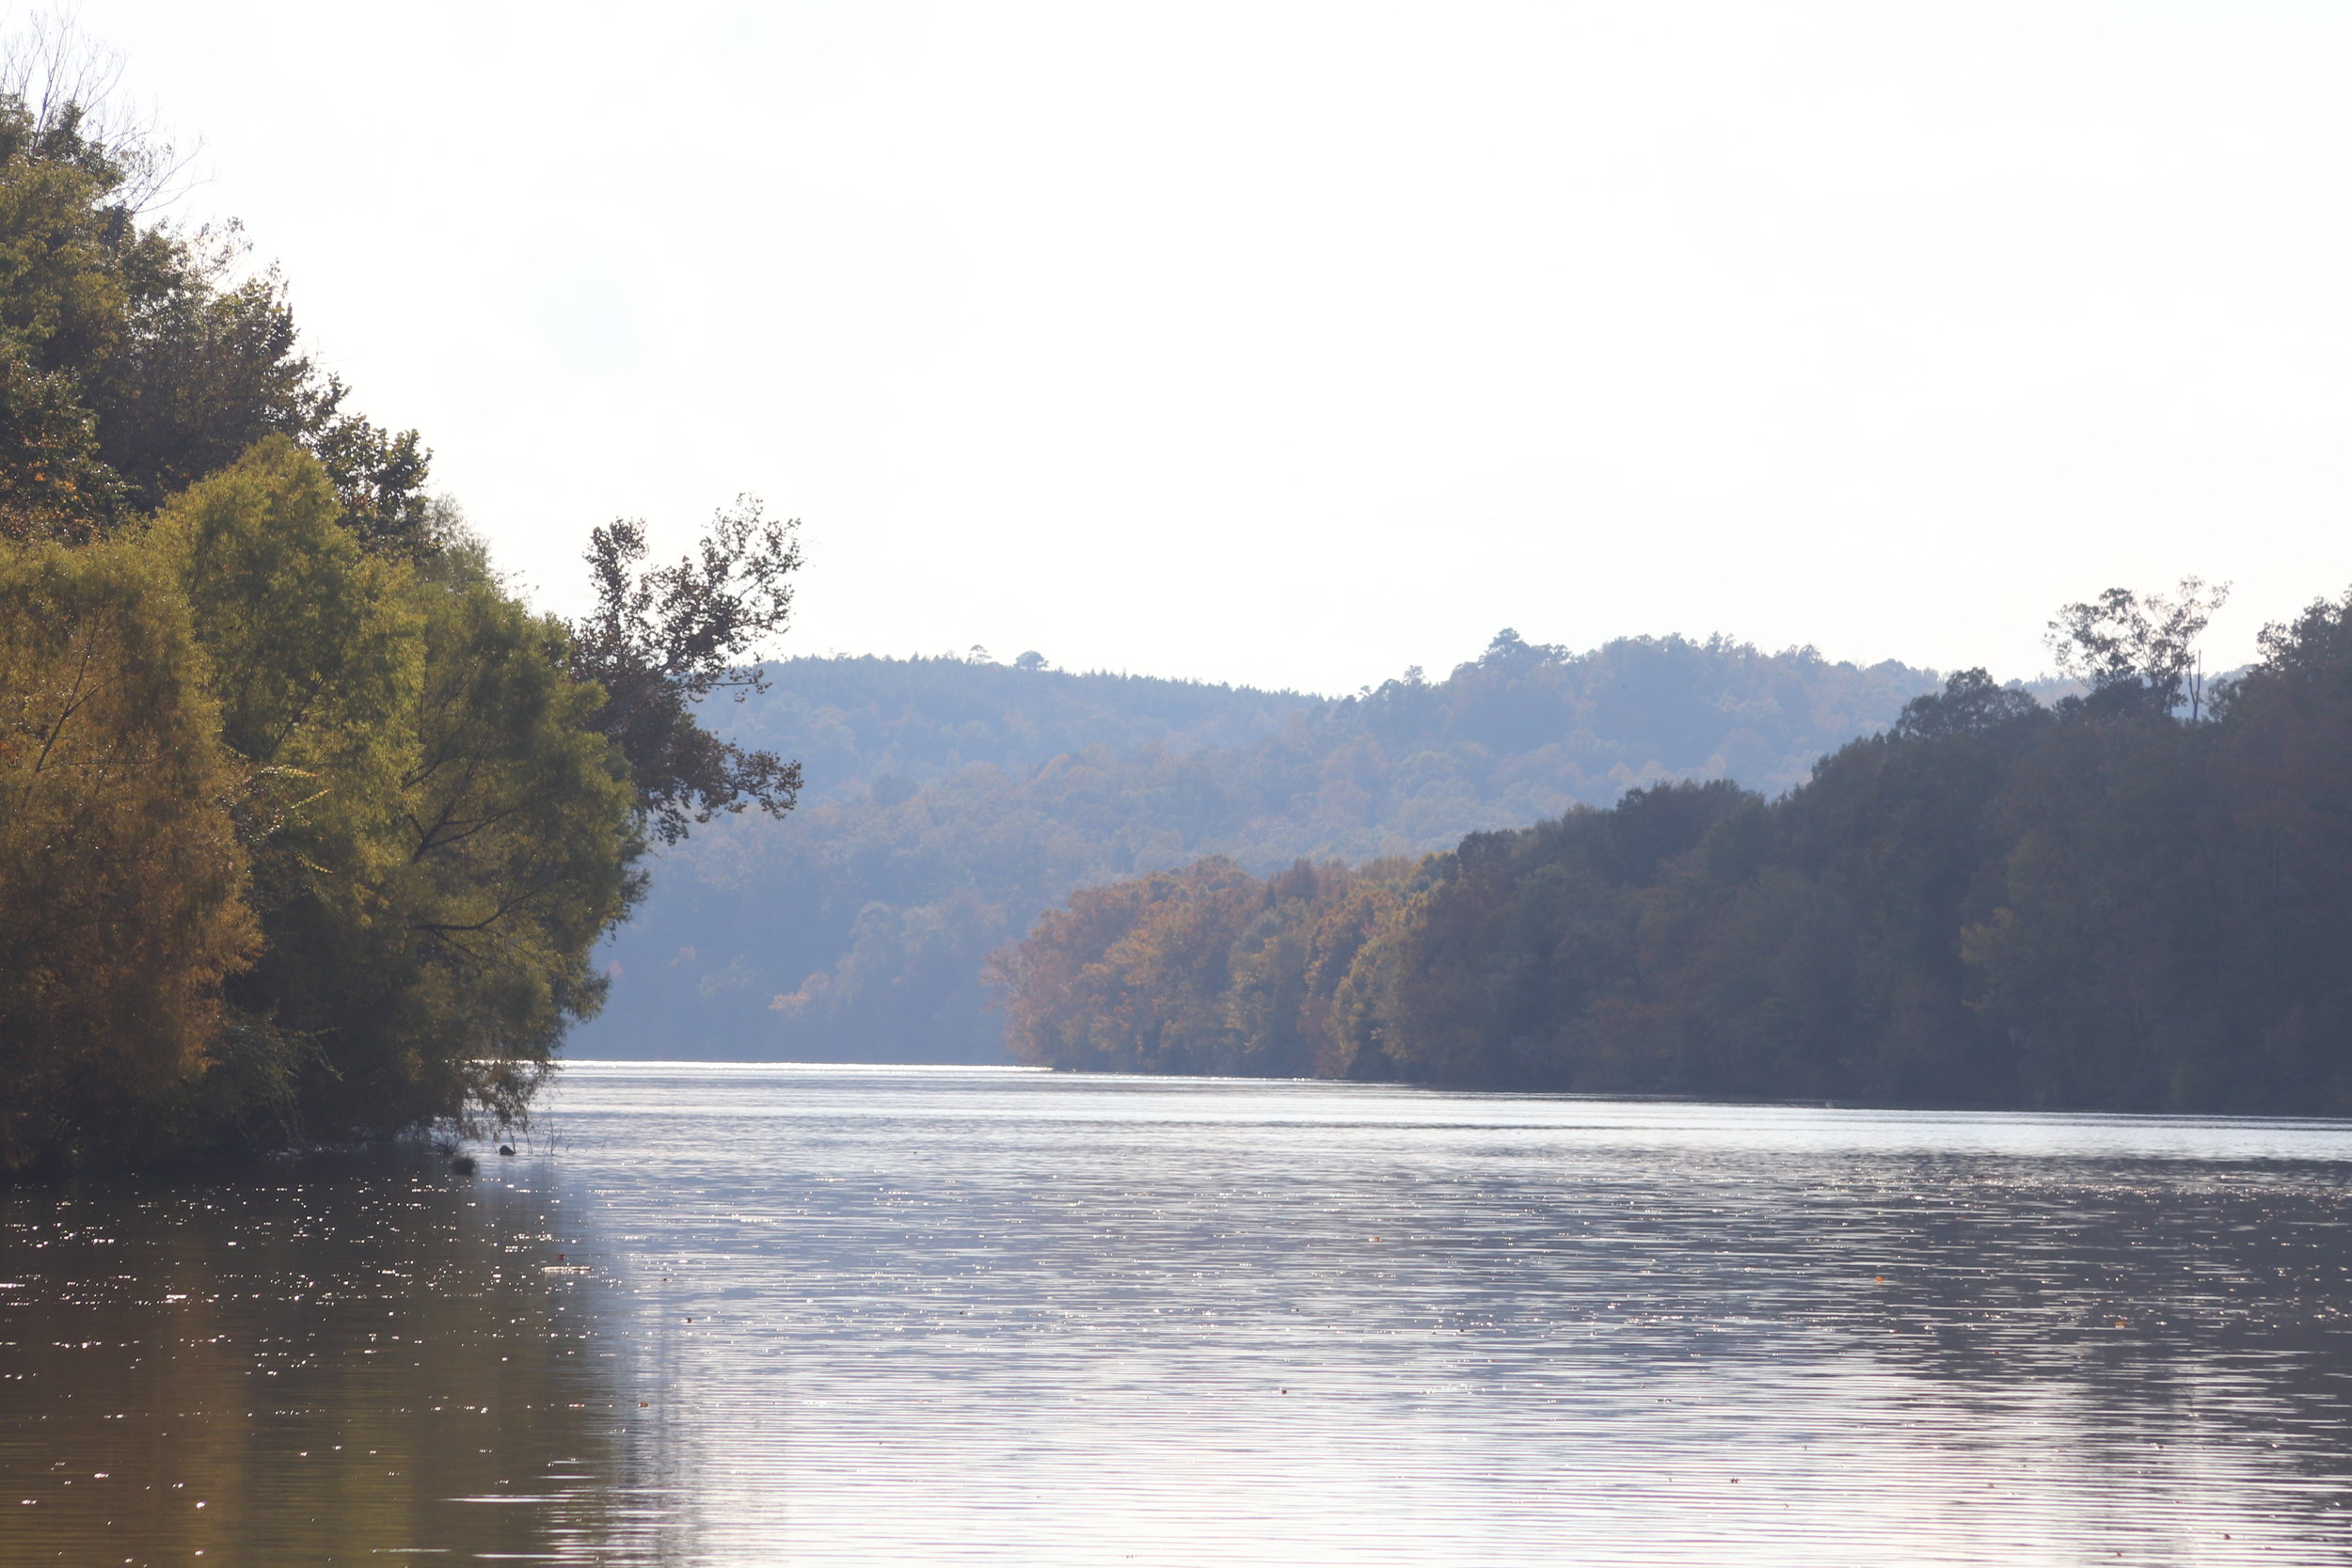 Black Warrior-Tombigbee, a little south of Bobby's Fish Camp